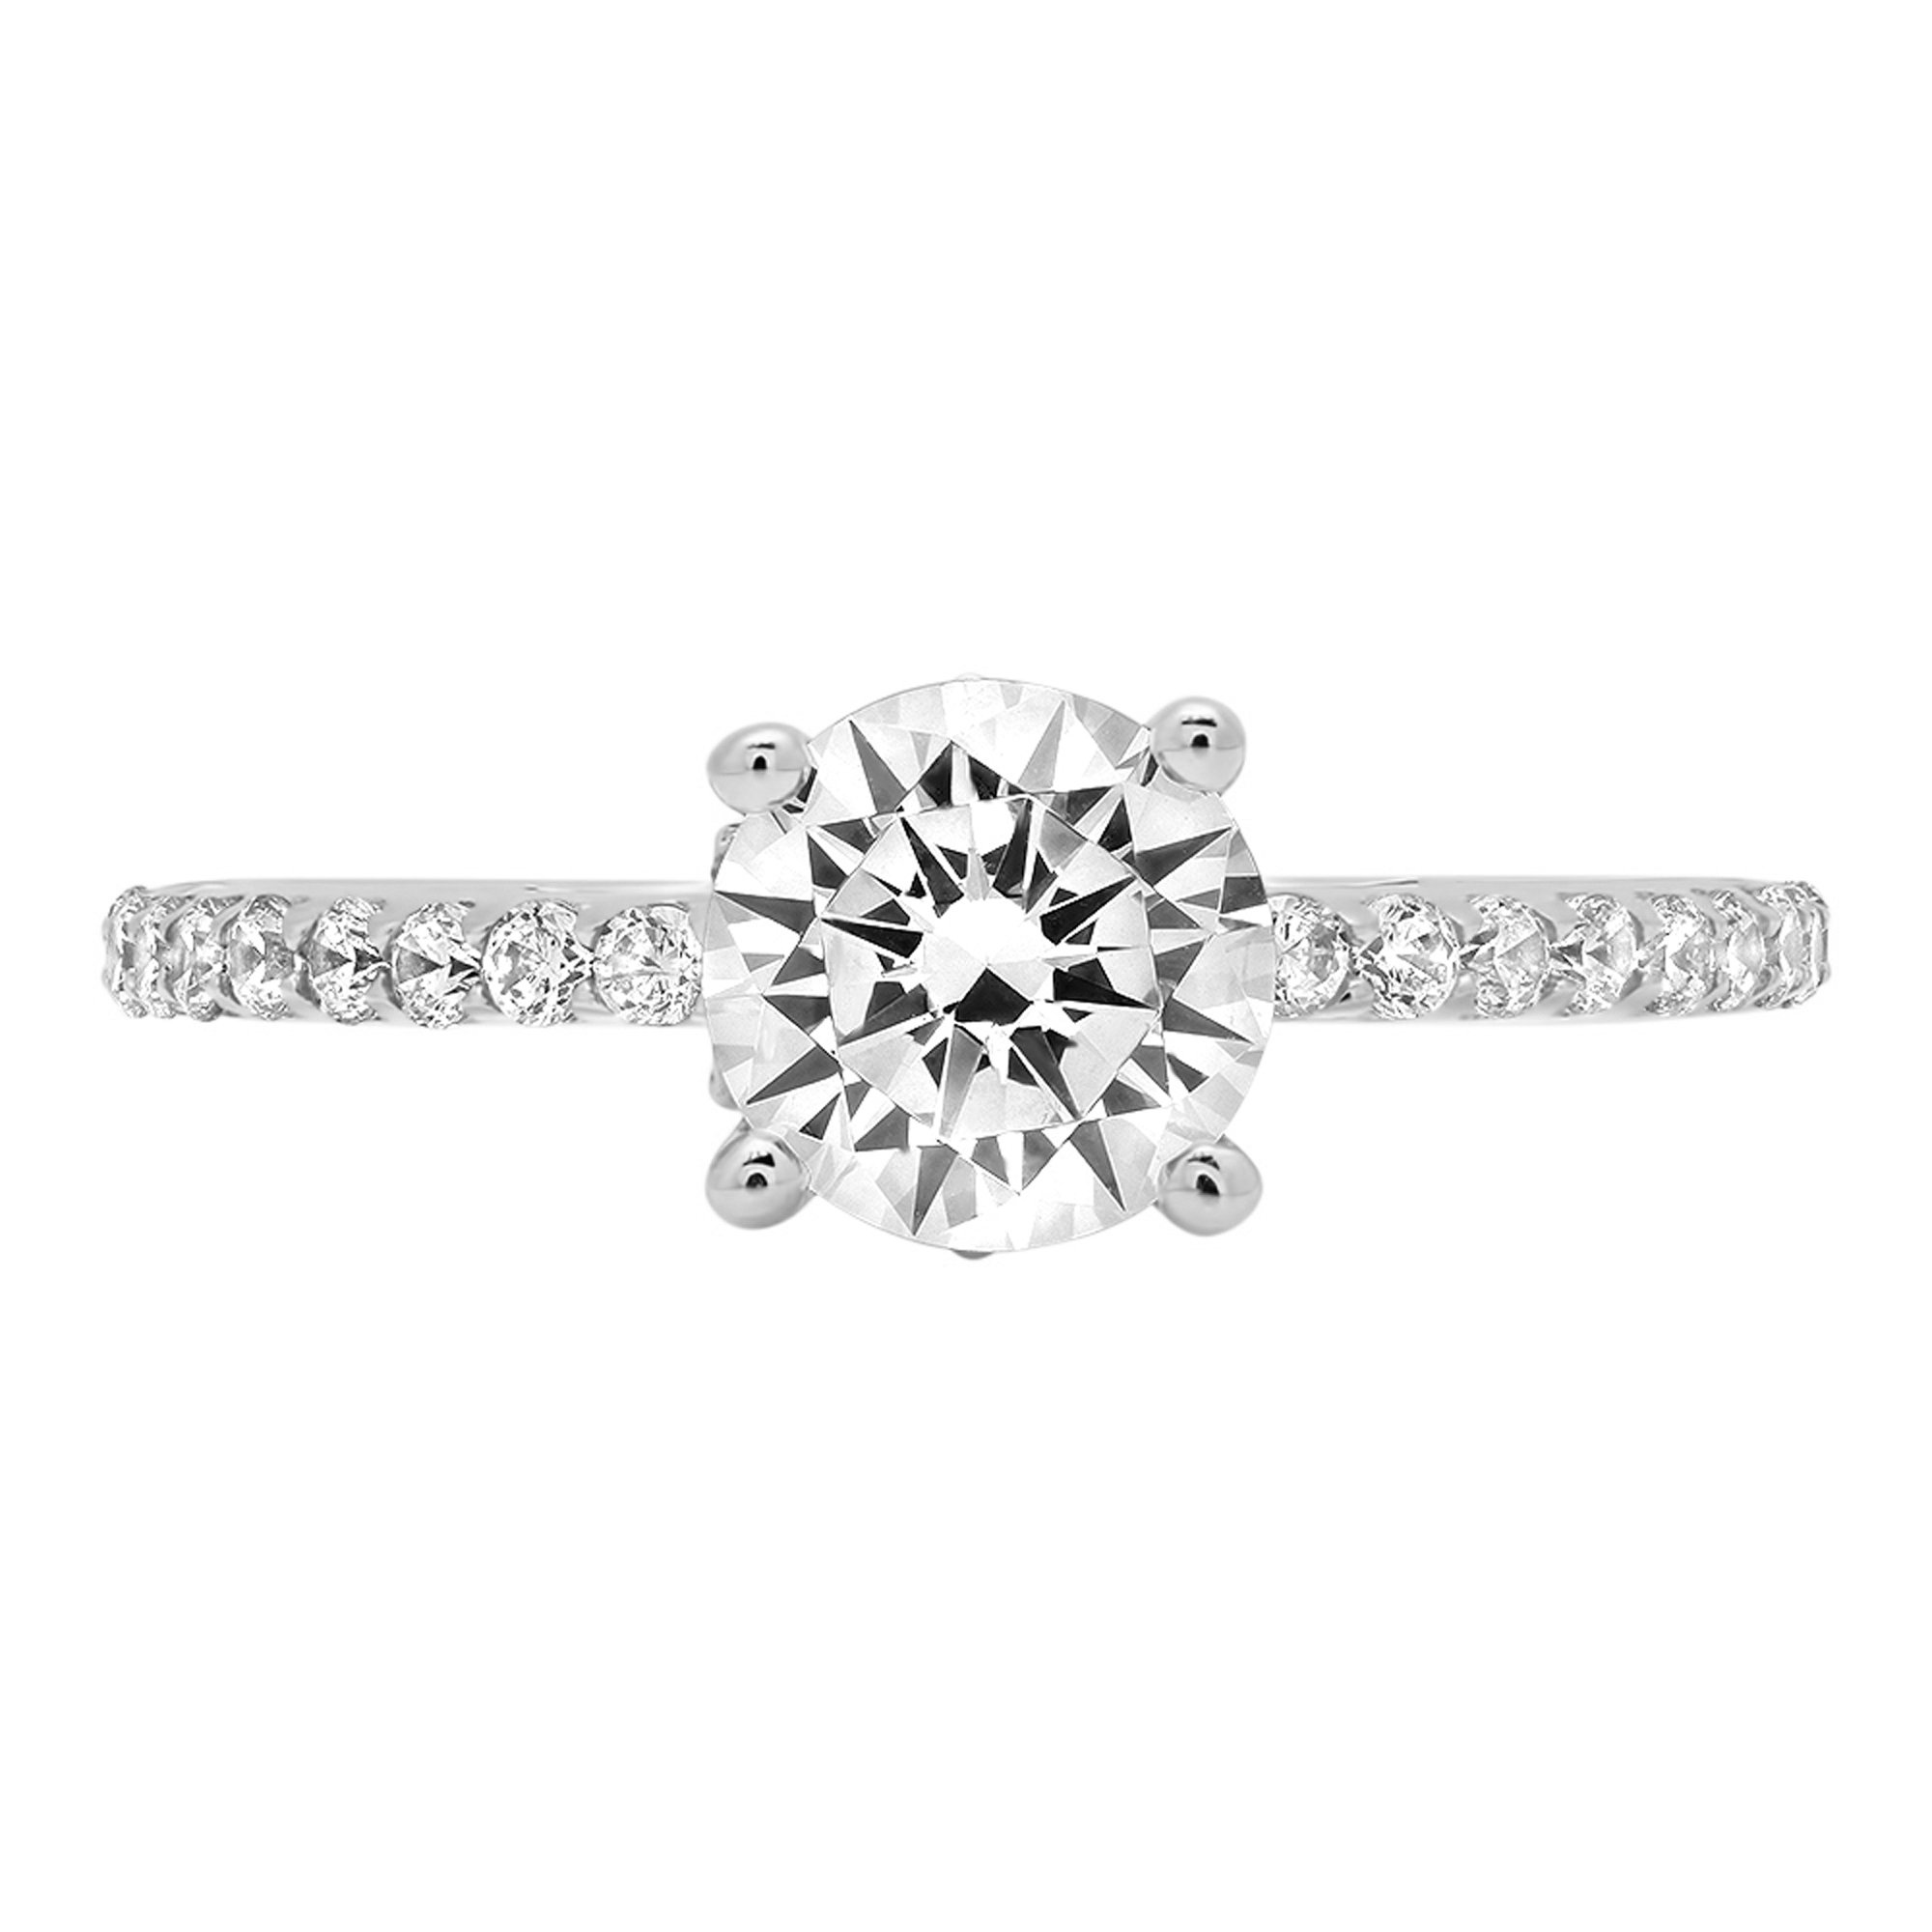 1.44ct Brilliant Round Cut Designer Accent Solitaire Promise Anniversary Statement Engagement Wedding Bridal Ring For Women Solid 14k White Gold, 6.5